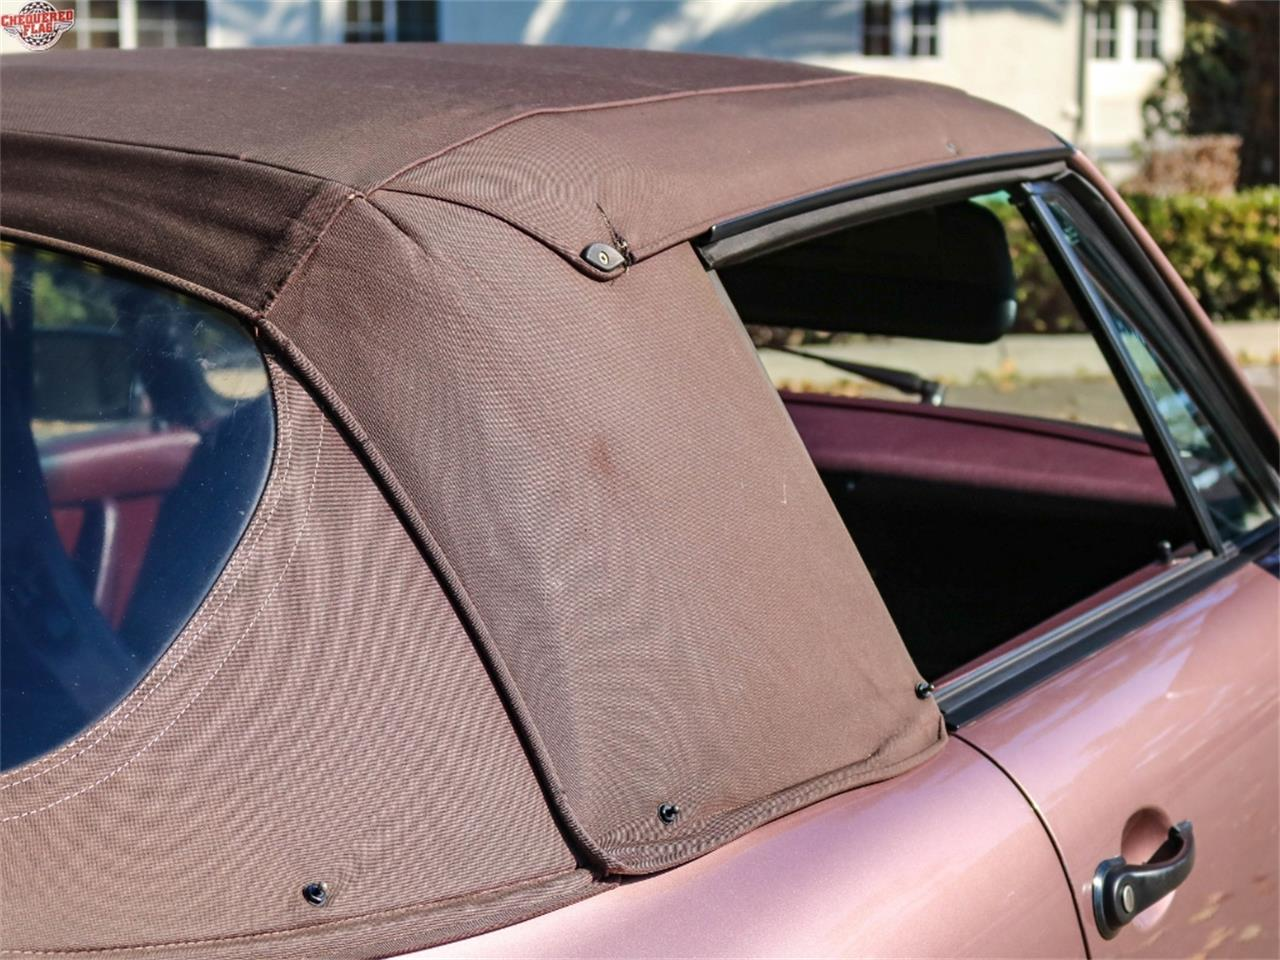 Large Picture of 1987 Porsche 911 located in Marina Del Rey California Offered by Chequered Flag International - M7SG